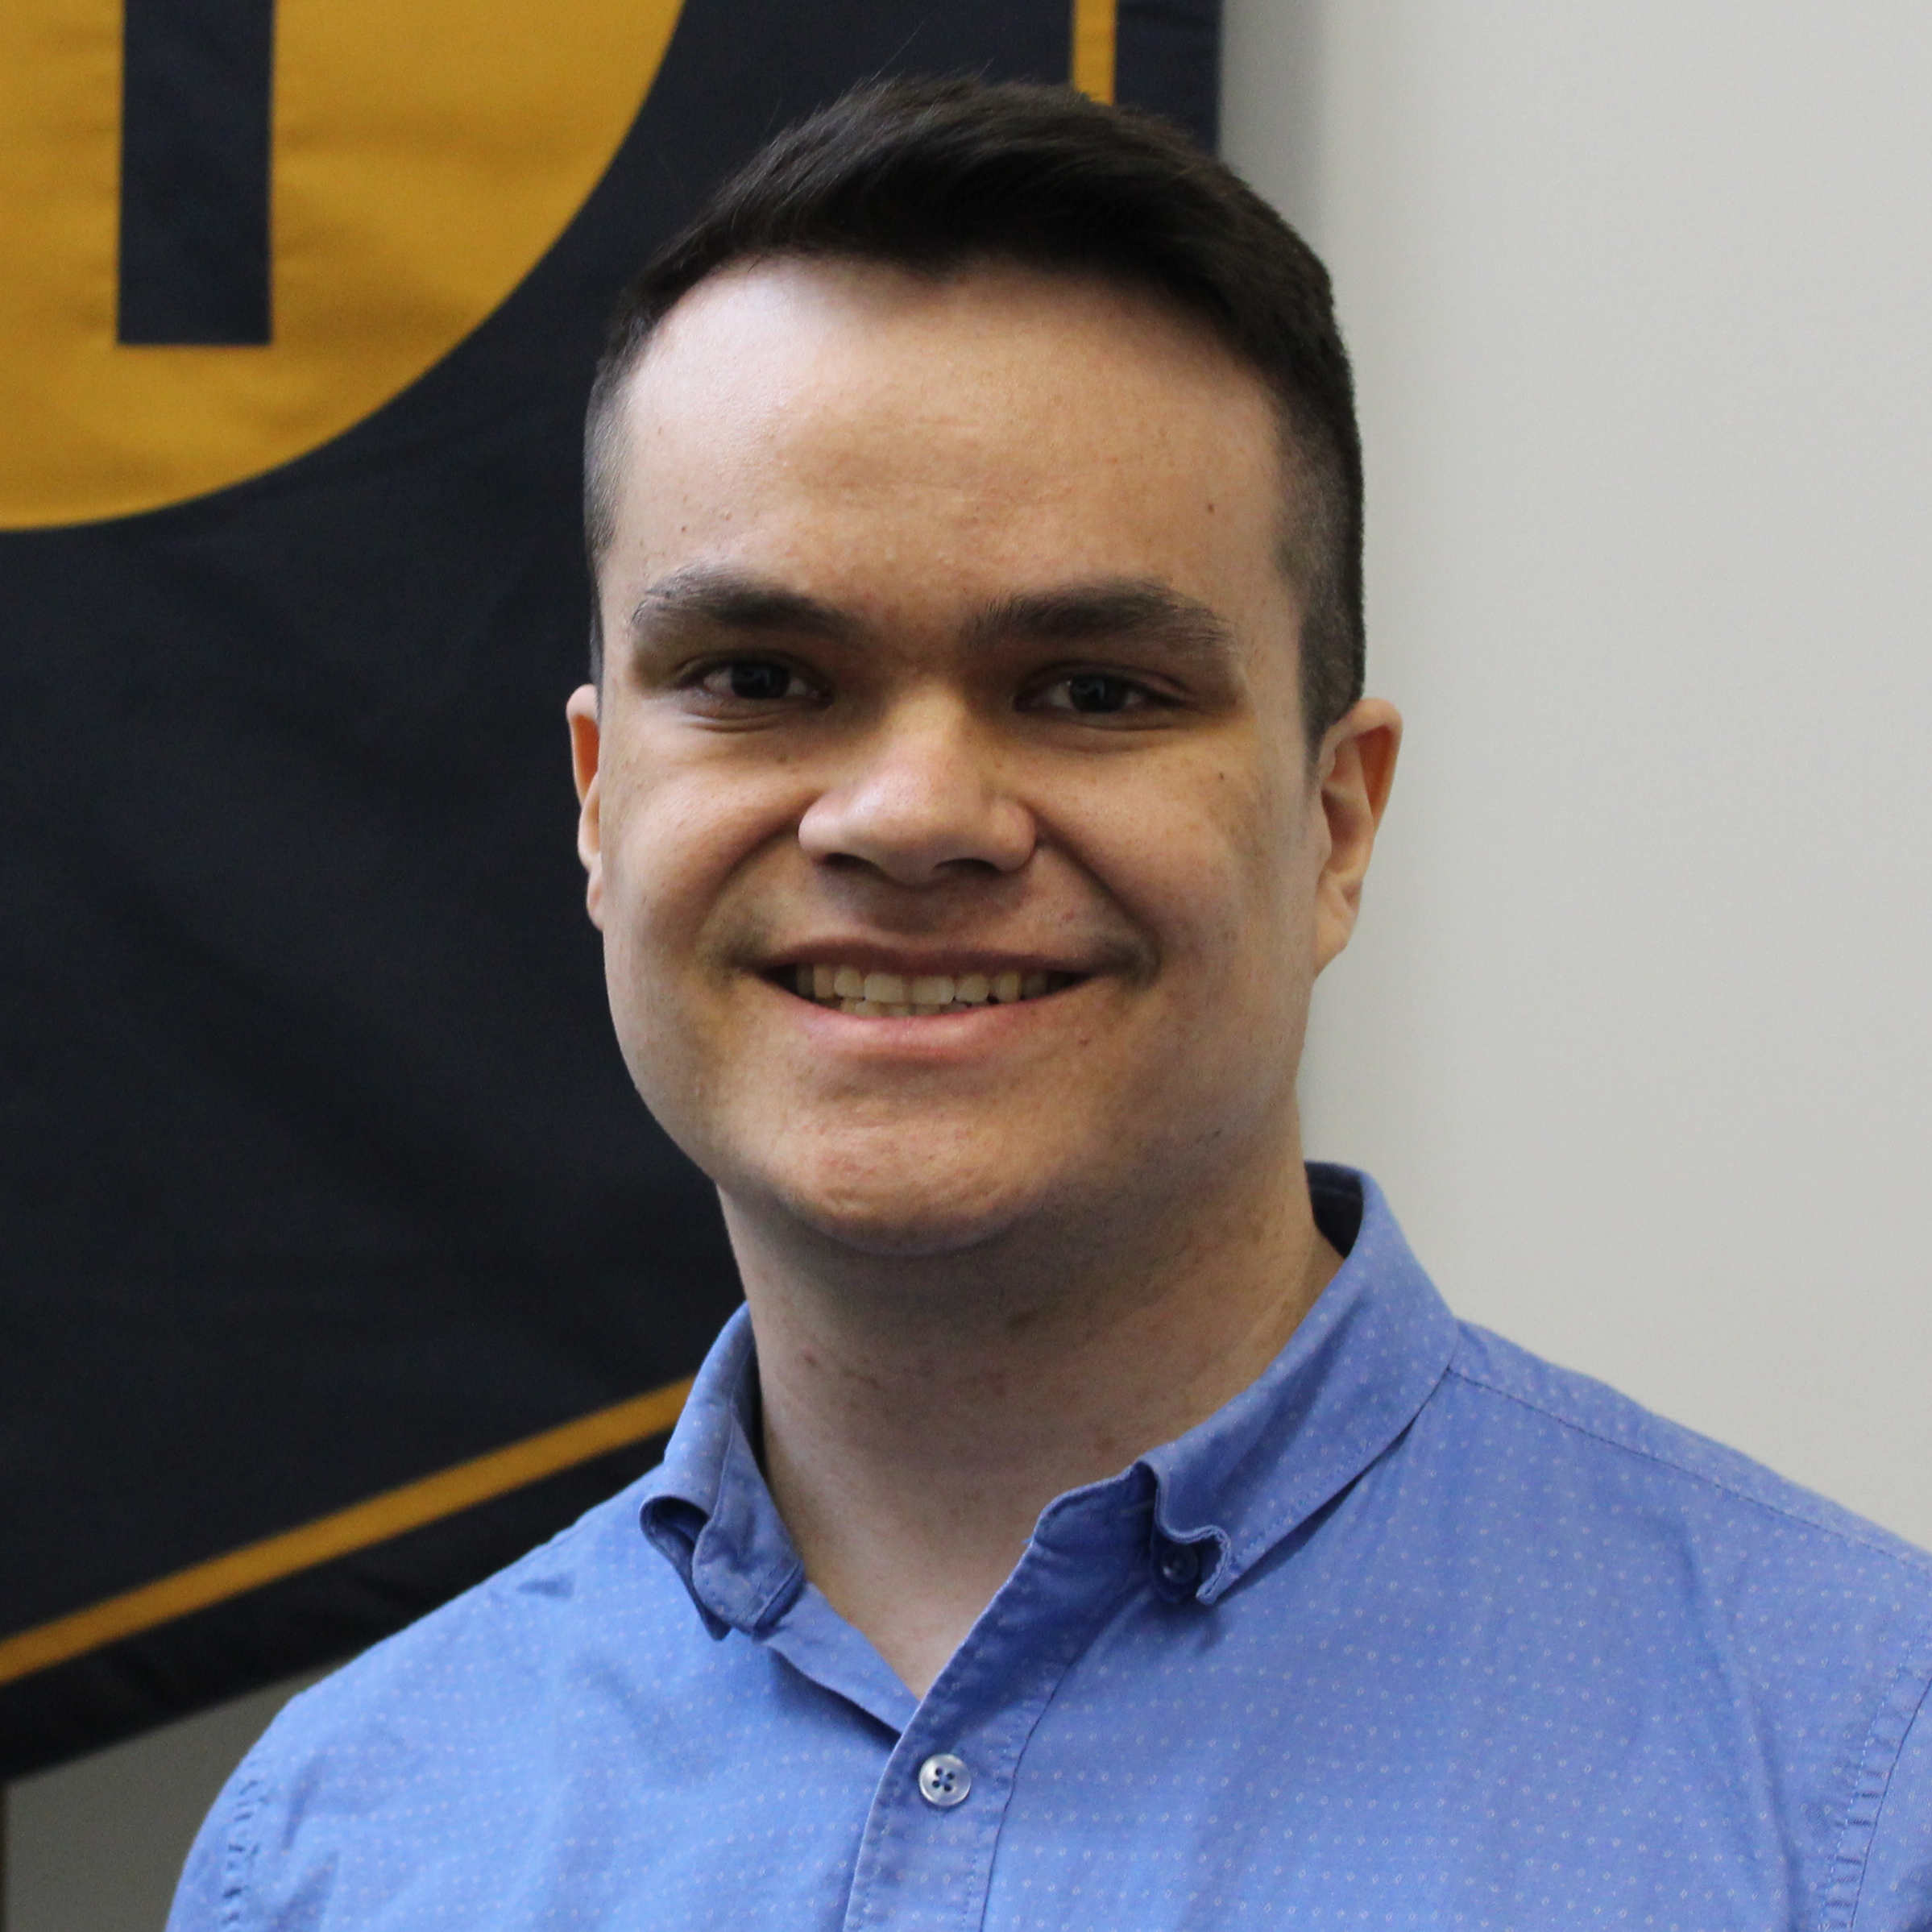 A headshot of Joshua Wood. They are wearing a blue button-up shirt. They are in front of a school banner which is hanging on the wall behind them.